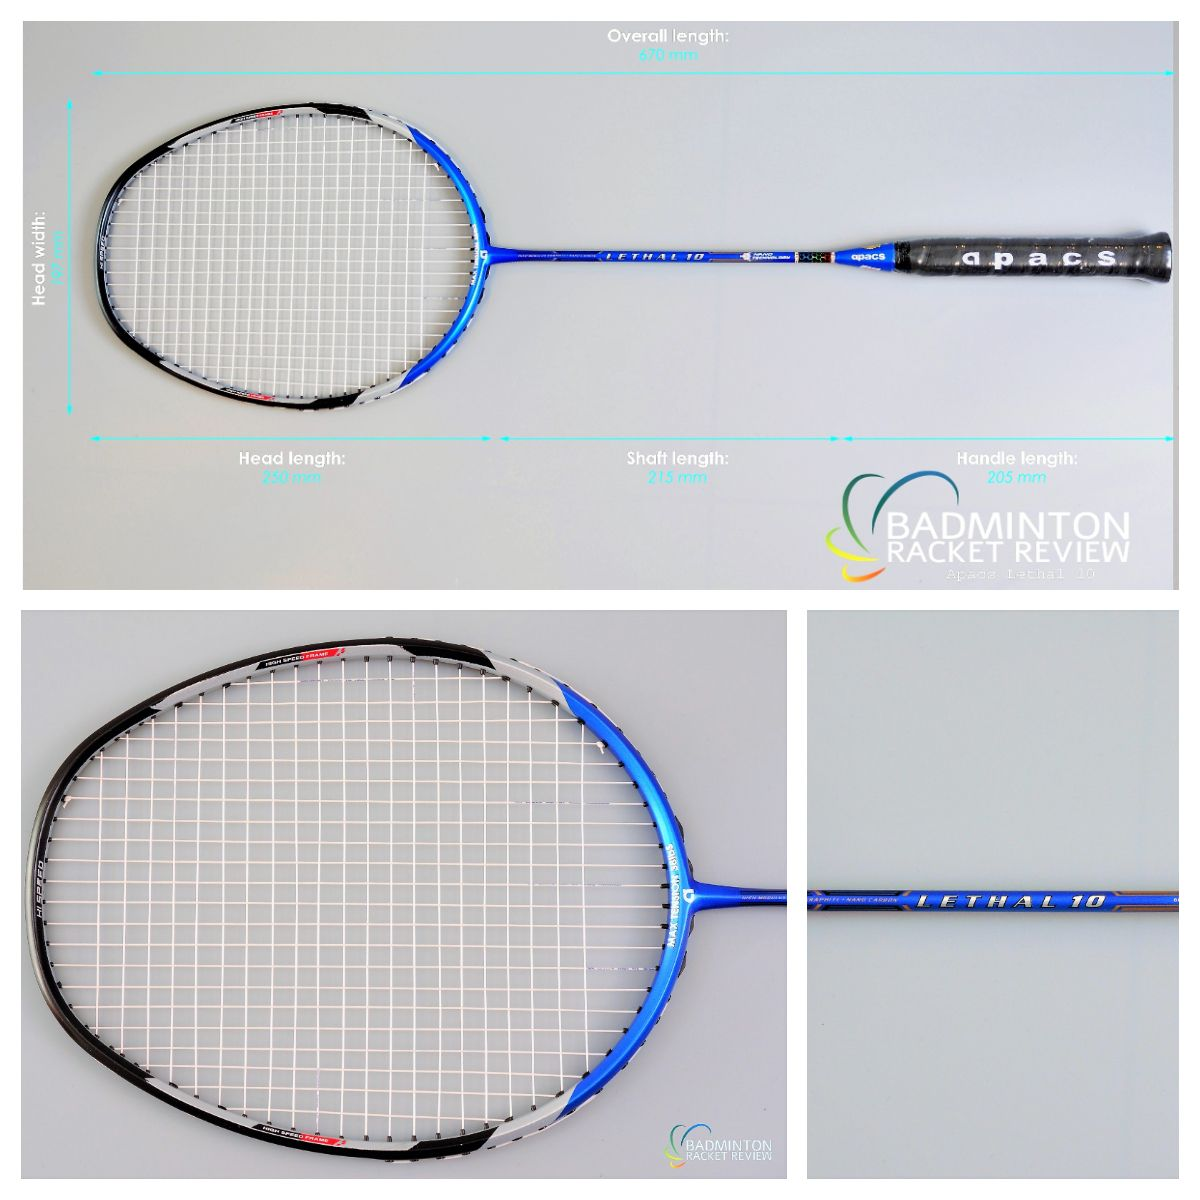 Apace Lethal 10 Badminton Racket Review Pictures To Find Out About This Racket S Performance And Over 570 Other Racket Go To Our Website And Hit The Badminto